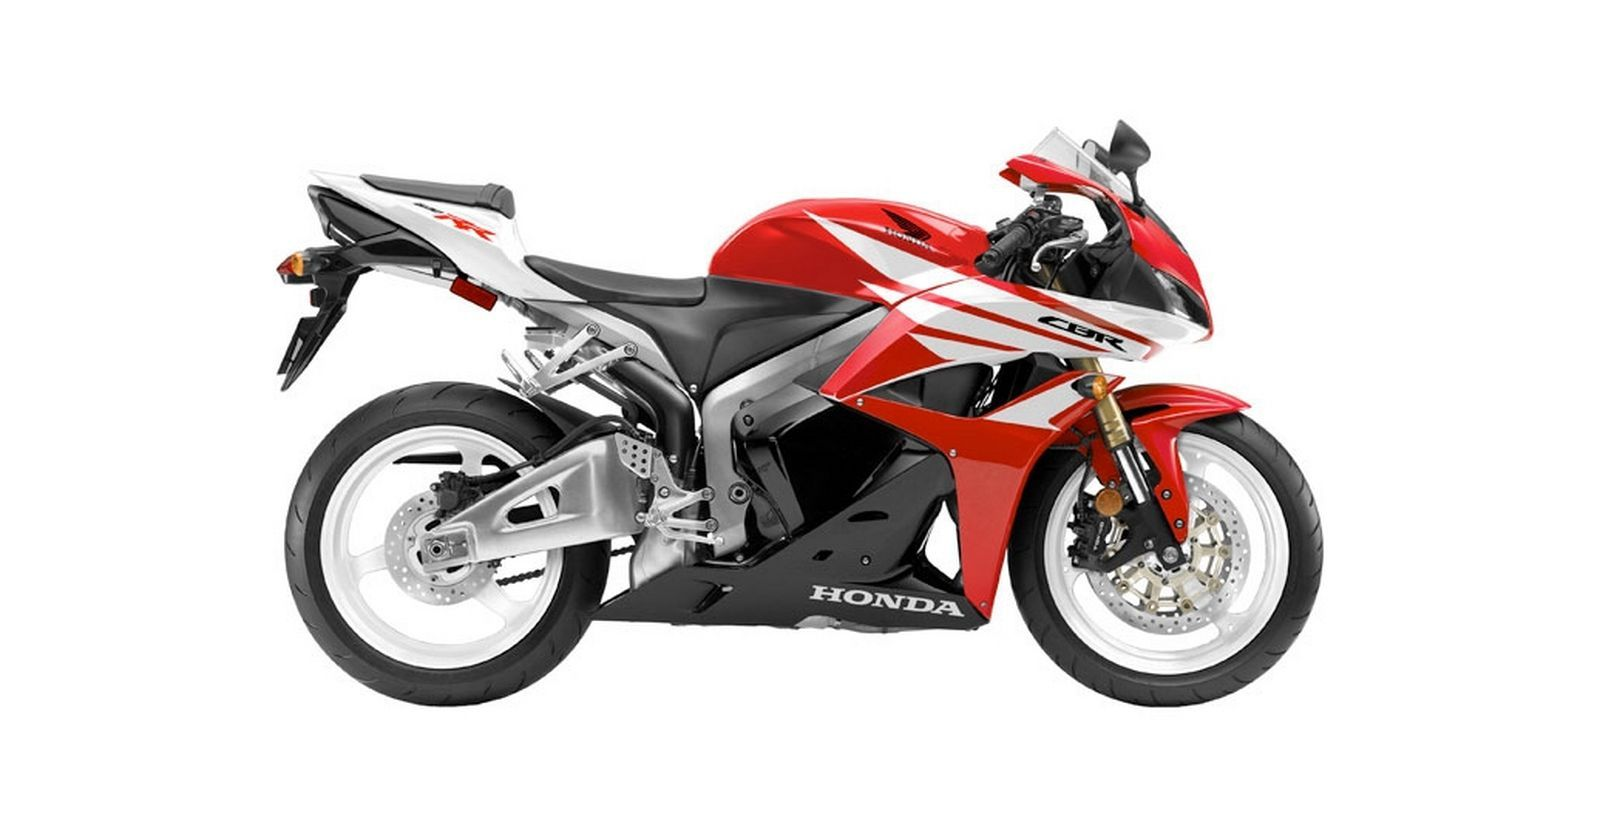 2012HondaCBR600RR. The color scheme is very reminiscent